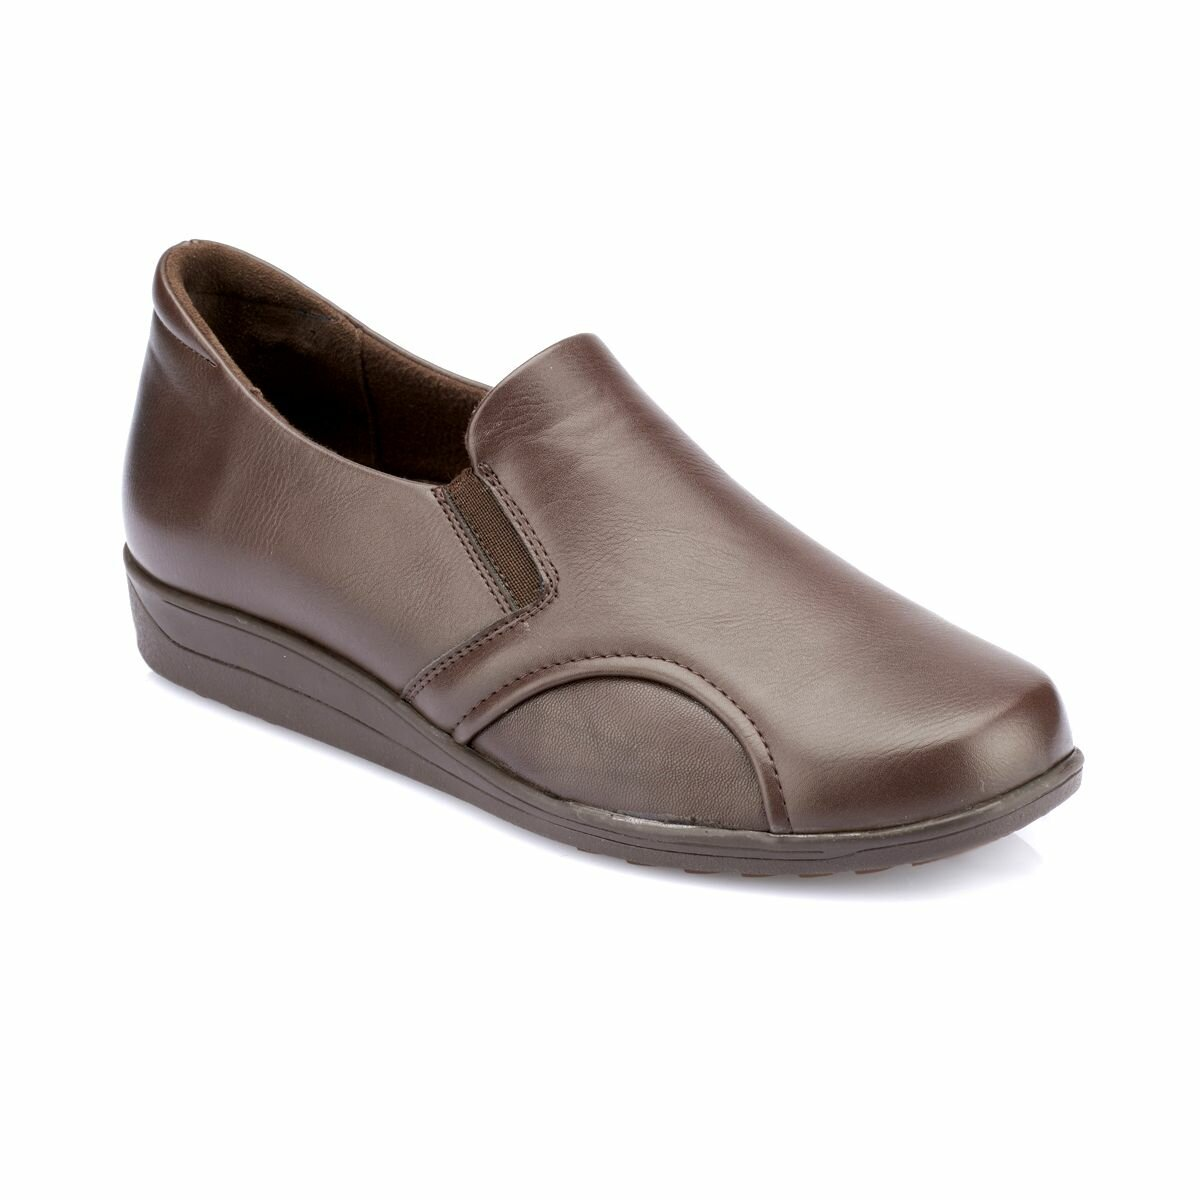 FLO 82.100160.Z Brown Women 'S Shoes Polaris 5 Point